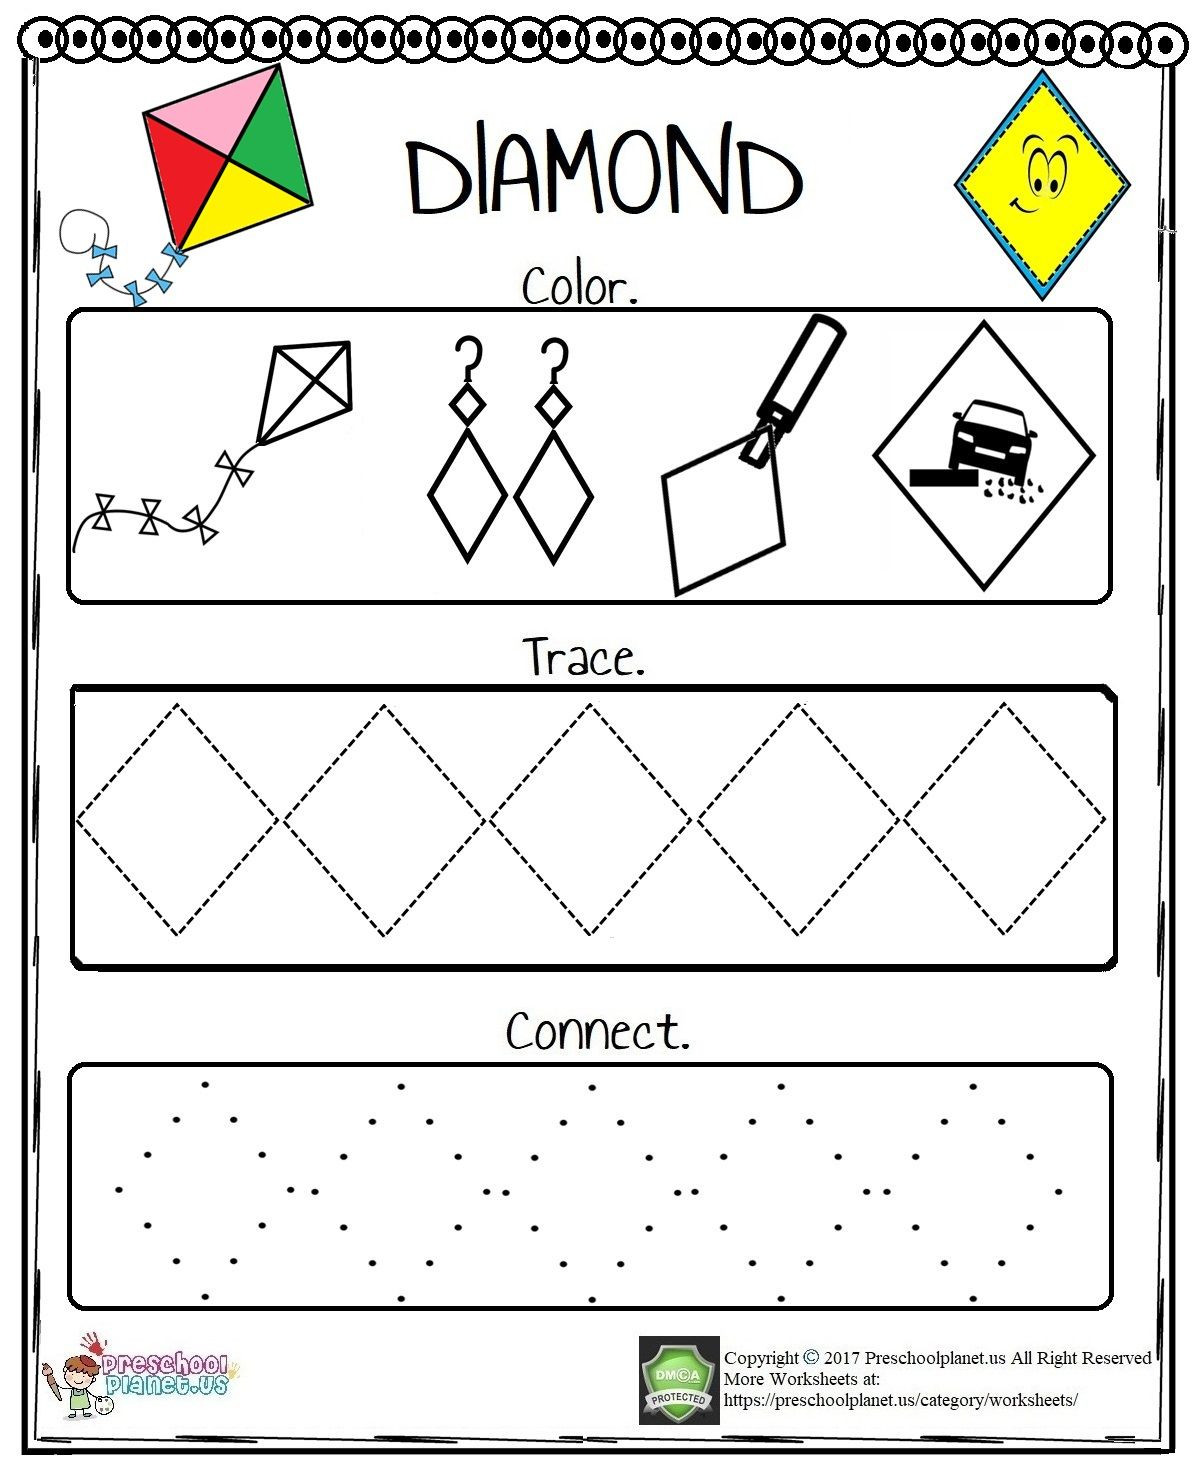 Diamond Worksheets for Preschool It is Very Easy to Teach Diamond Shape to Little Ones with